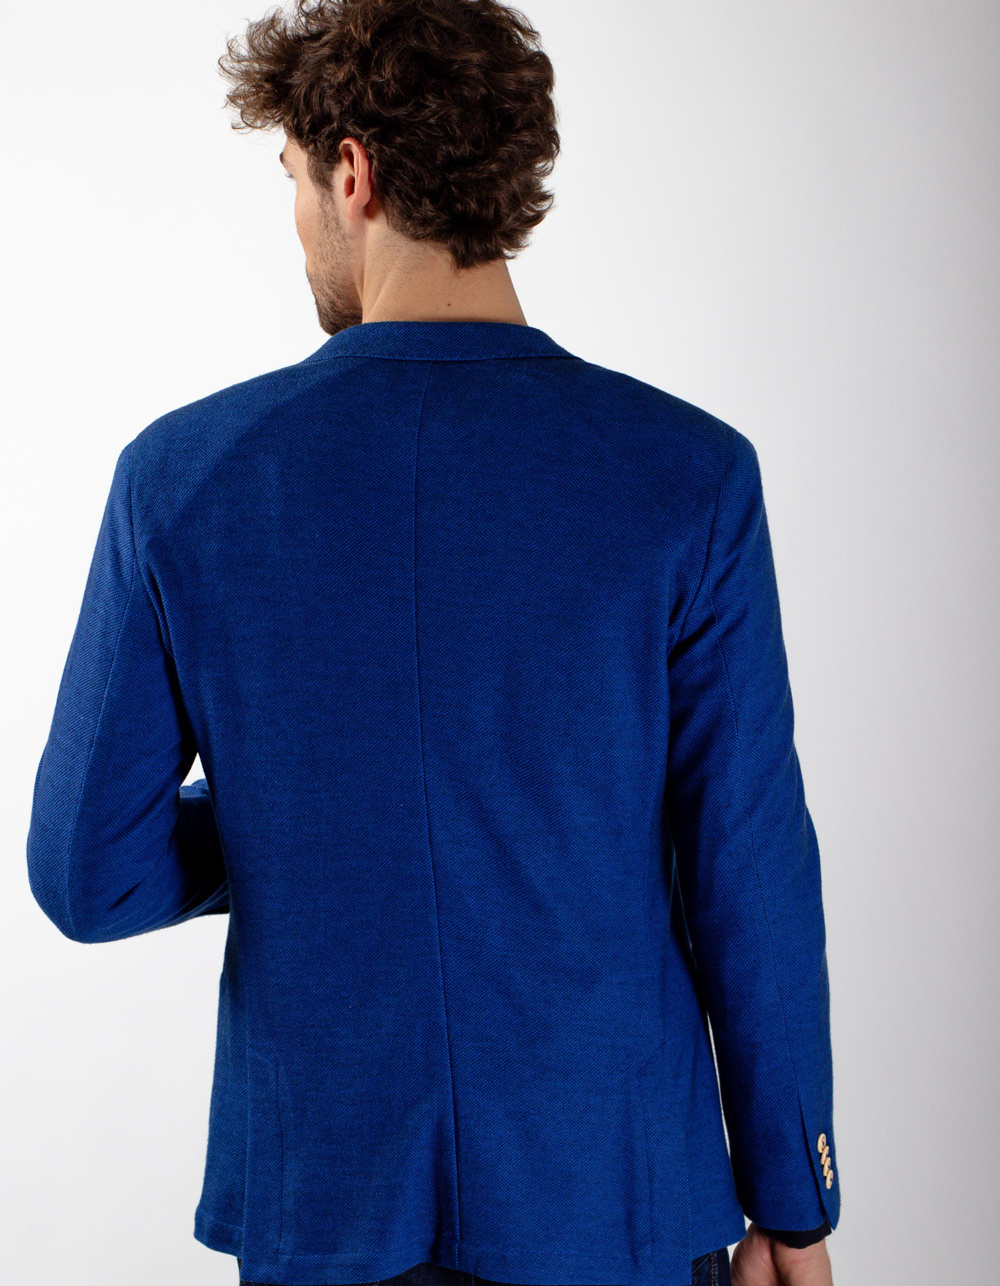 Royal blue blazer - Backside